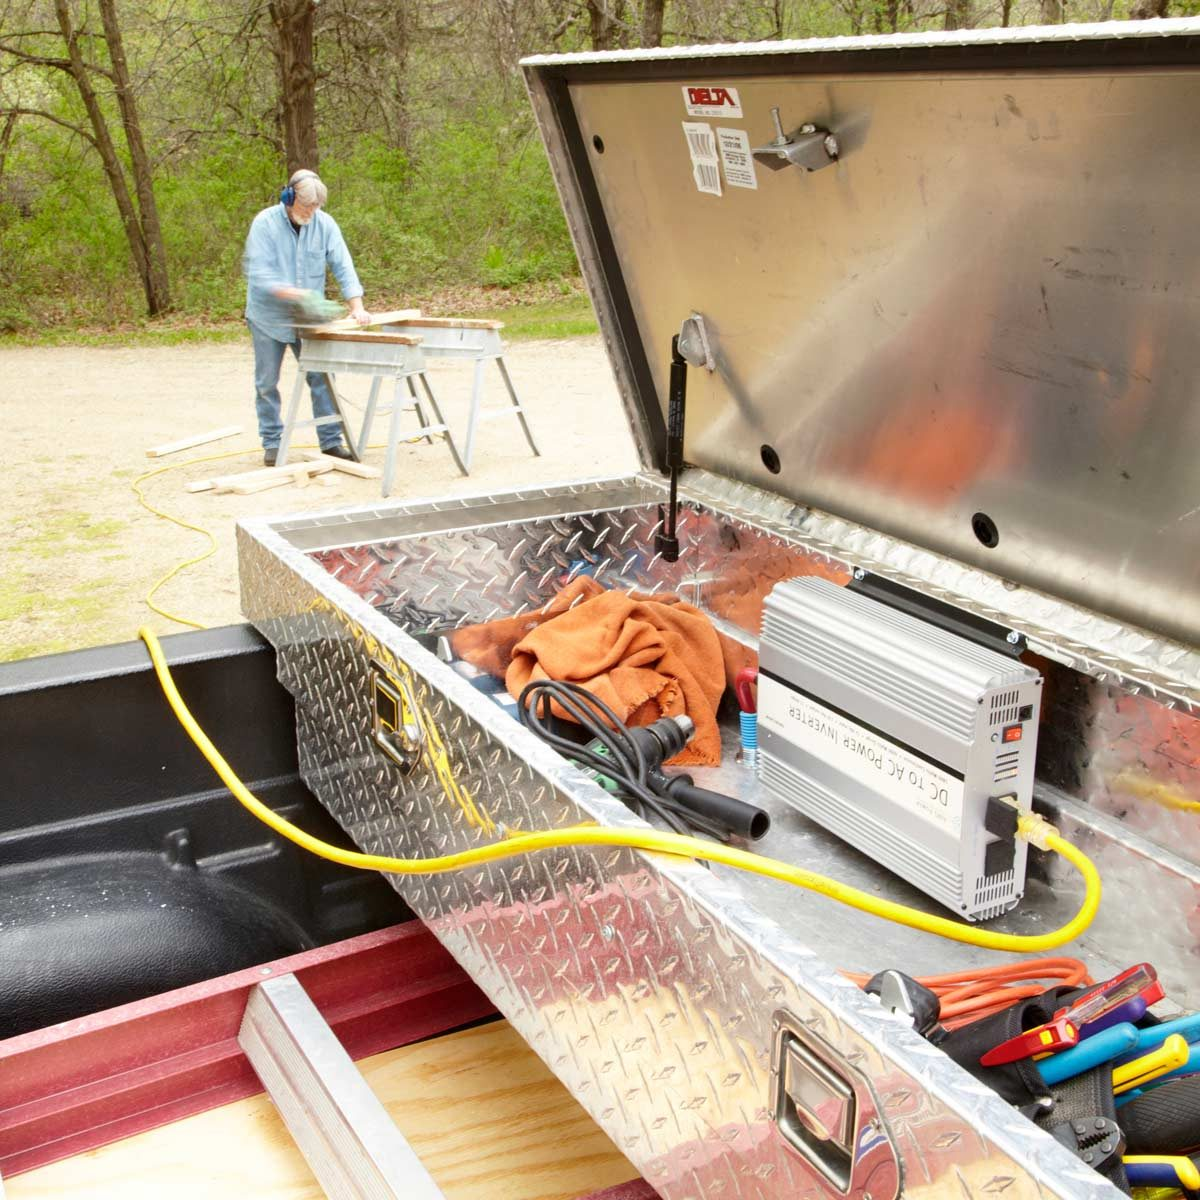 Auxiliary Lighting Wiring Diagram How To Turn Your Truck Into A Generator The Family Handyman